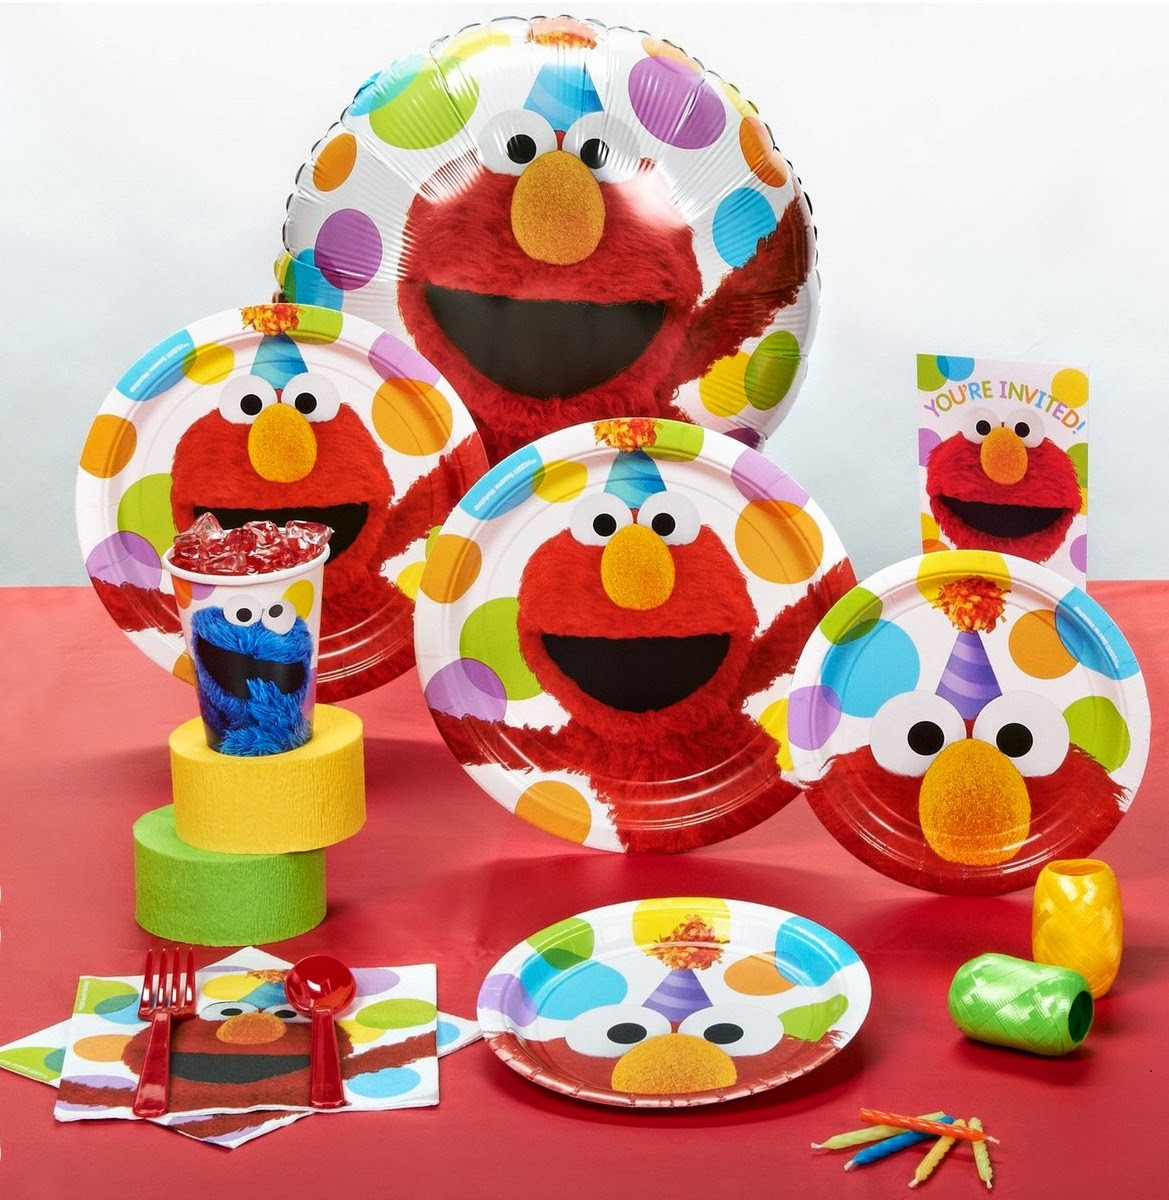 Best ideas about Elmo Birthday Decorations . Save or Pin Elmo Themed Birthday Party Idea Now.